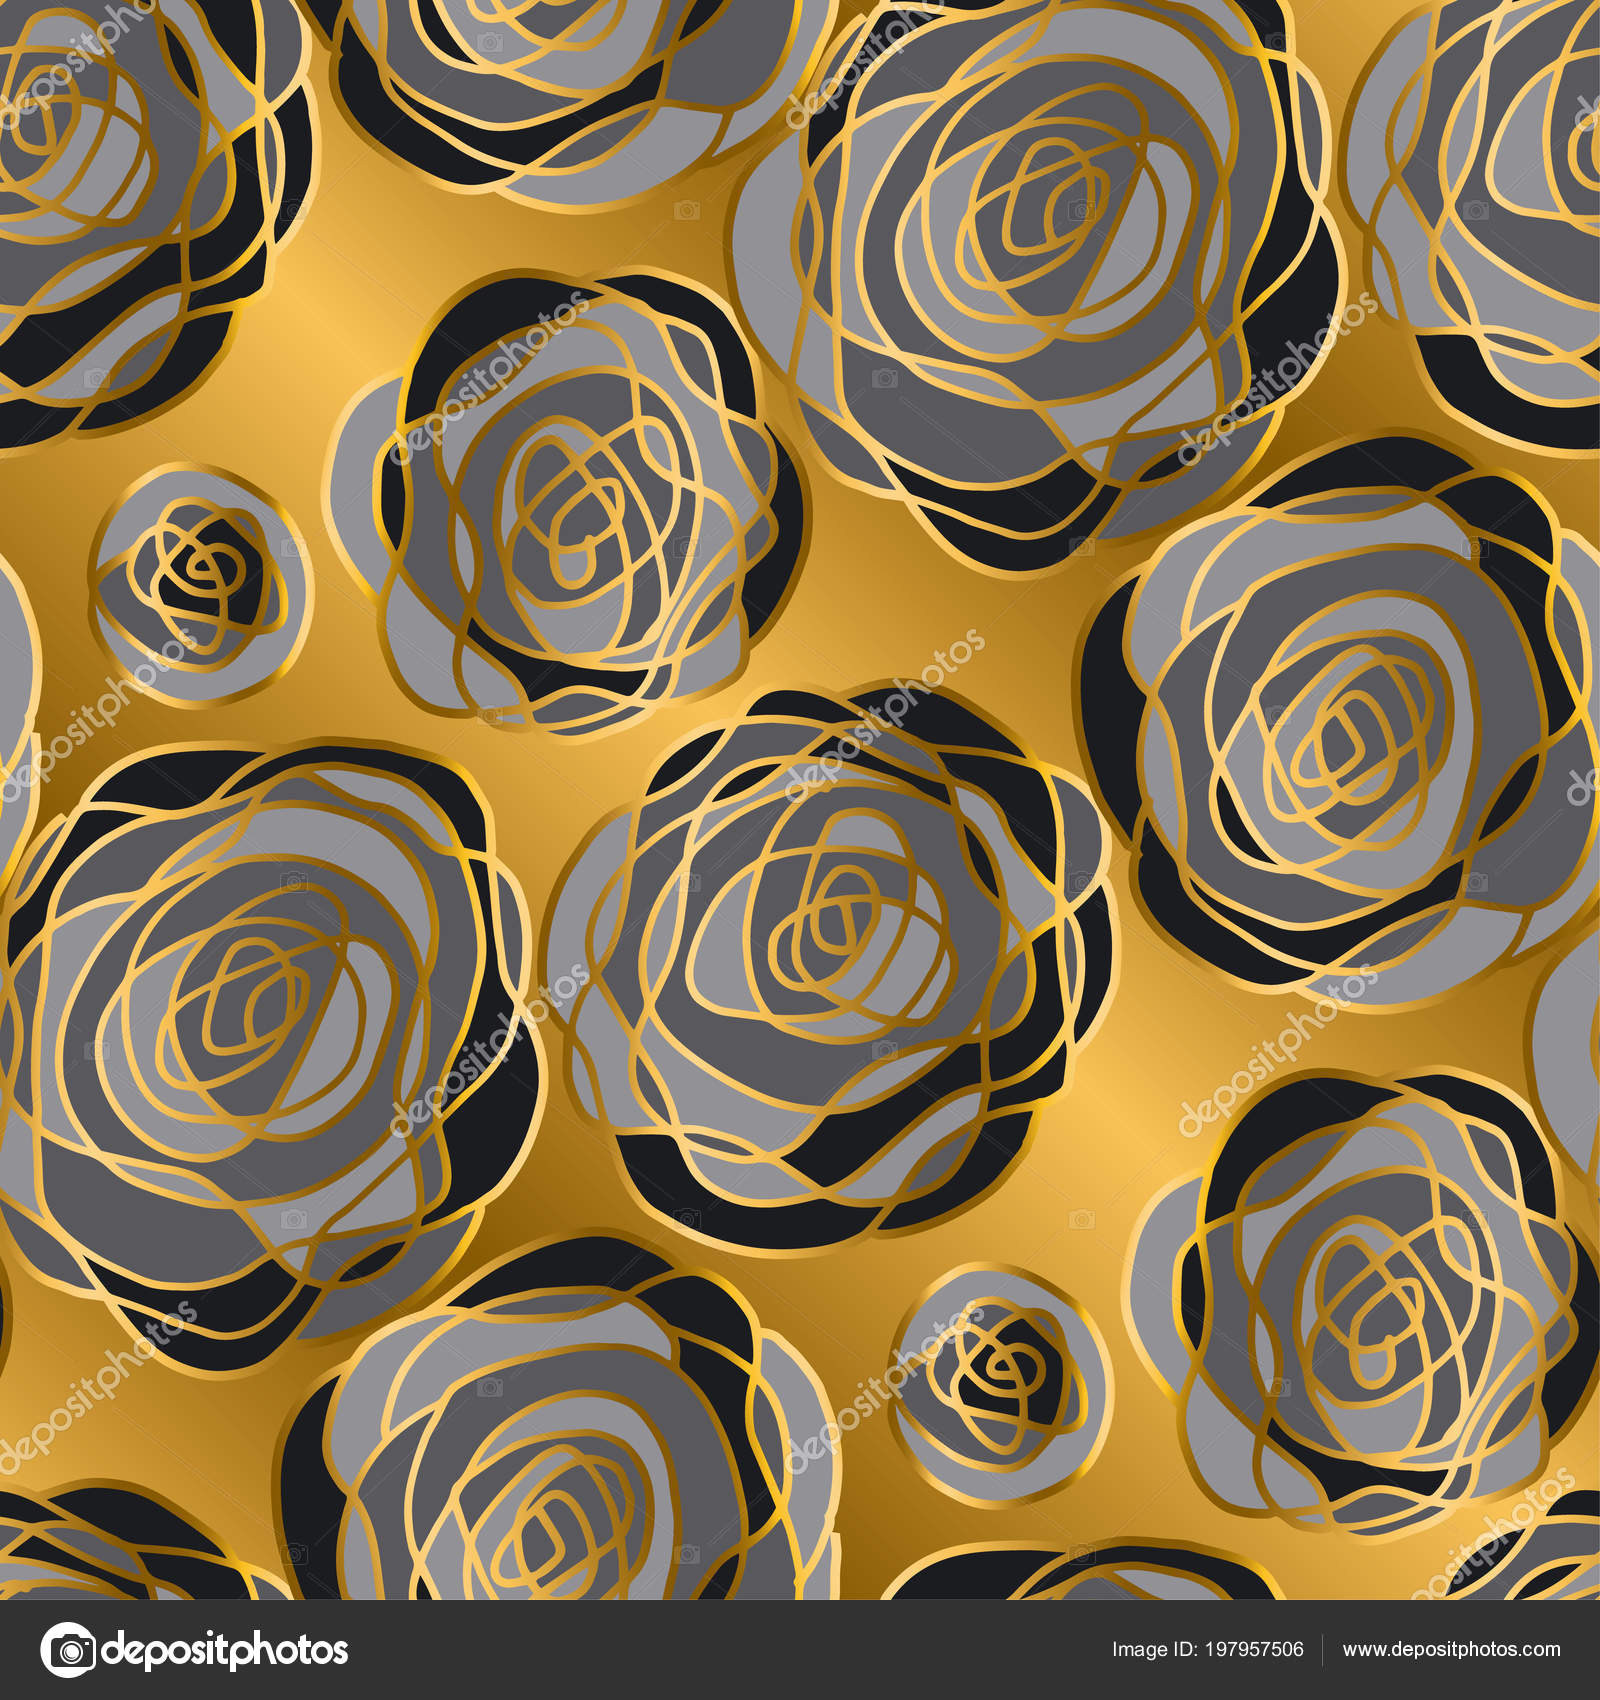 Luxury Gold Rose Decorative Flowers Seamless Pattern Gold Black Floral Stock Vector C Galyna 197957506